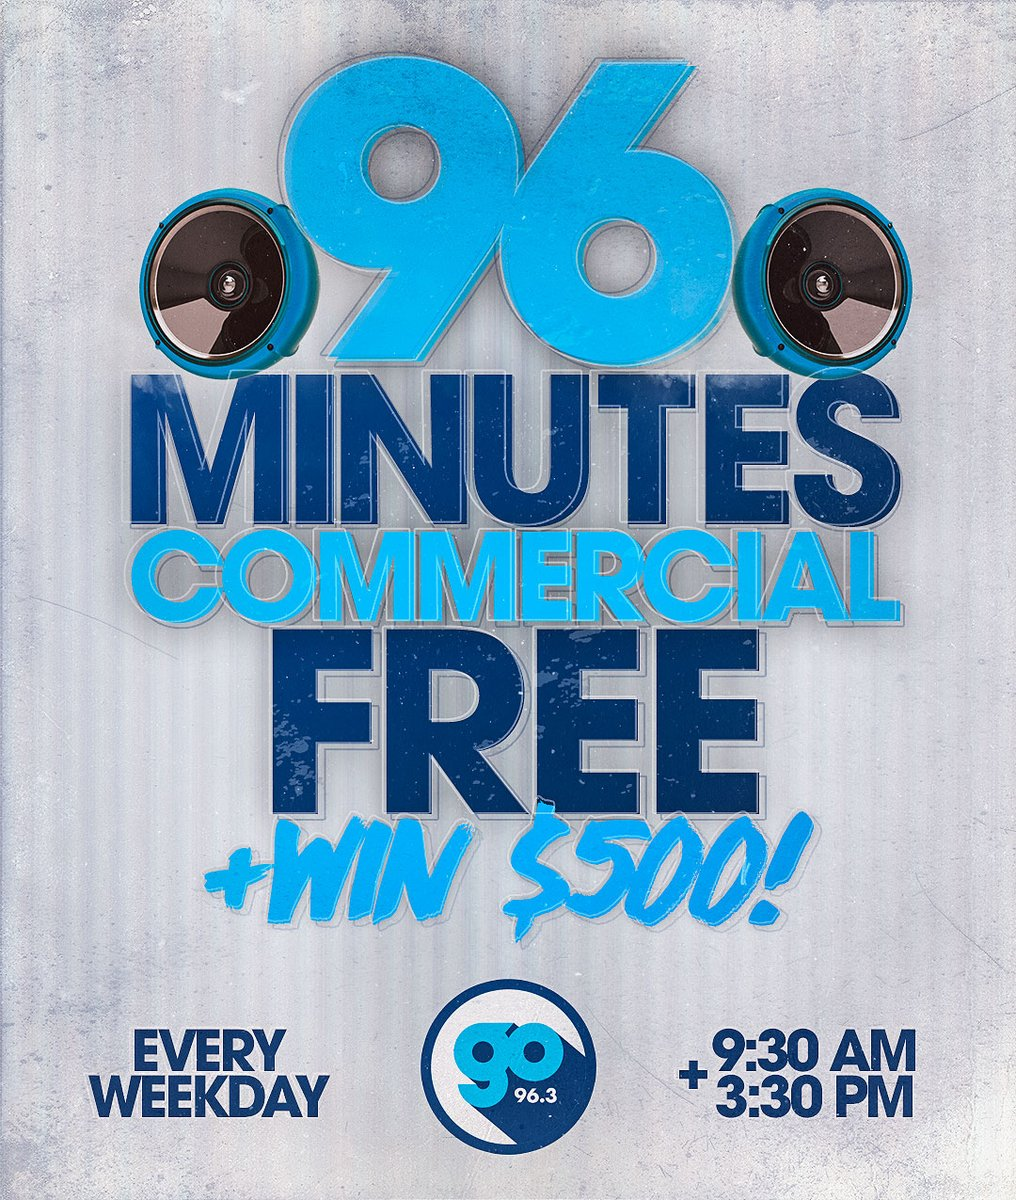 Any idea what's happening in 30 minutes? http://www.GoRadioMN.com/listen   We'll give you a $500 #CommercialFree hint pic.twitter.com/rqFtl4D9mZ